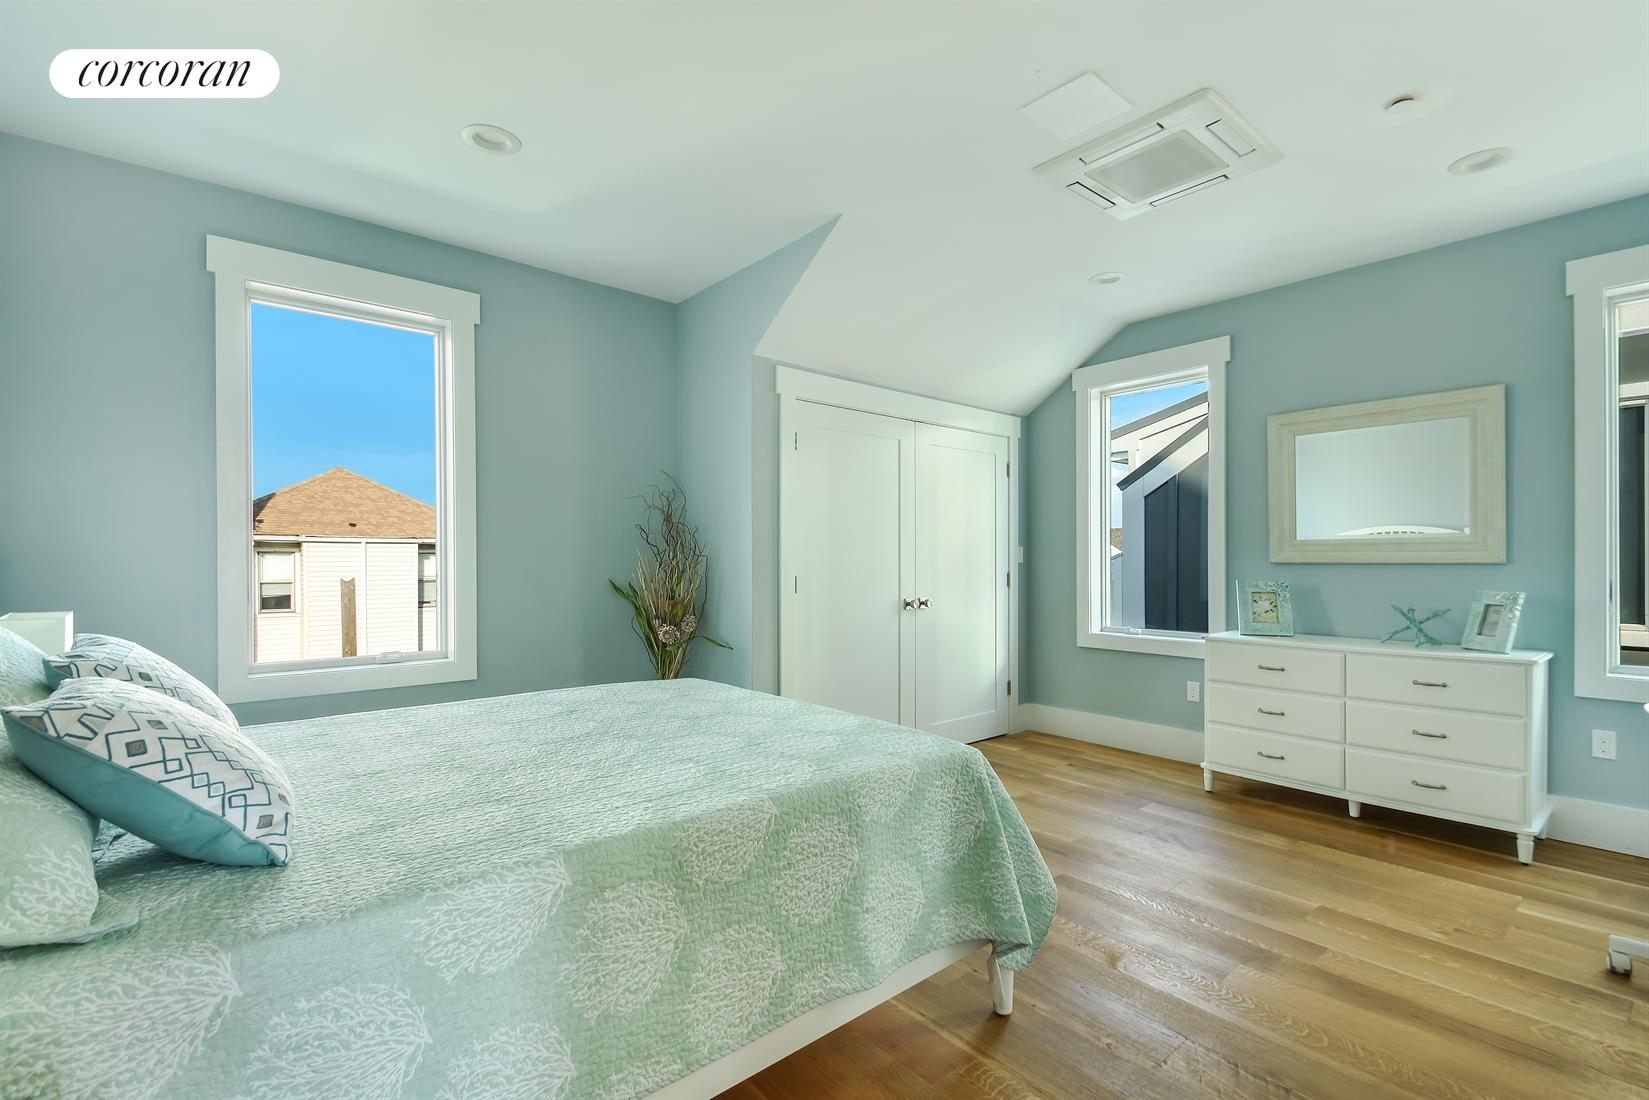 Corcoran, 180 Beach 127th Street, Apt. B, Belle Harbor Real Estate ...